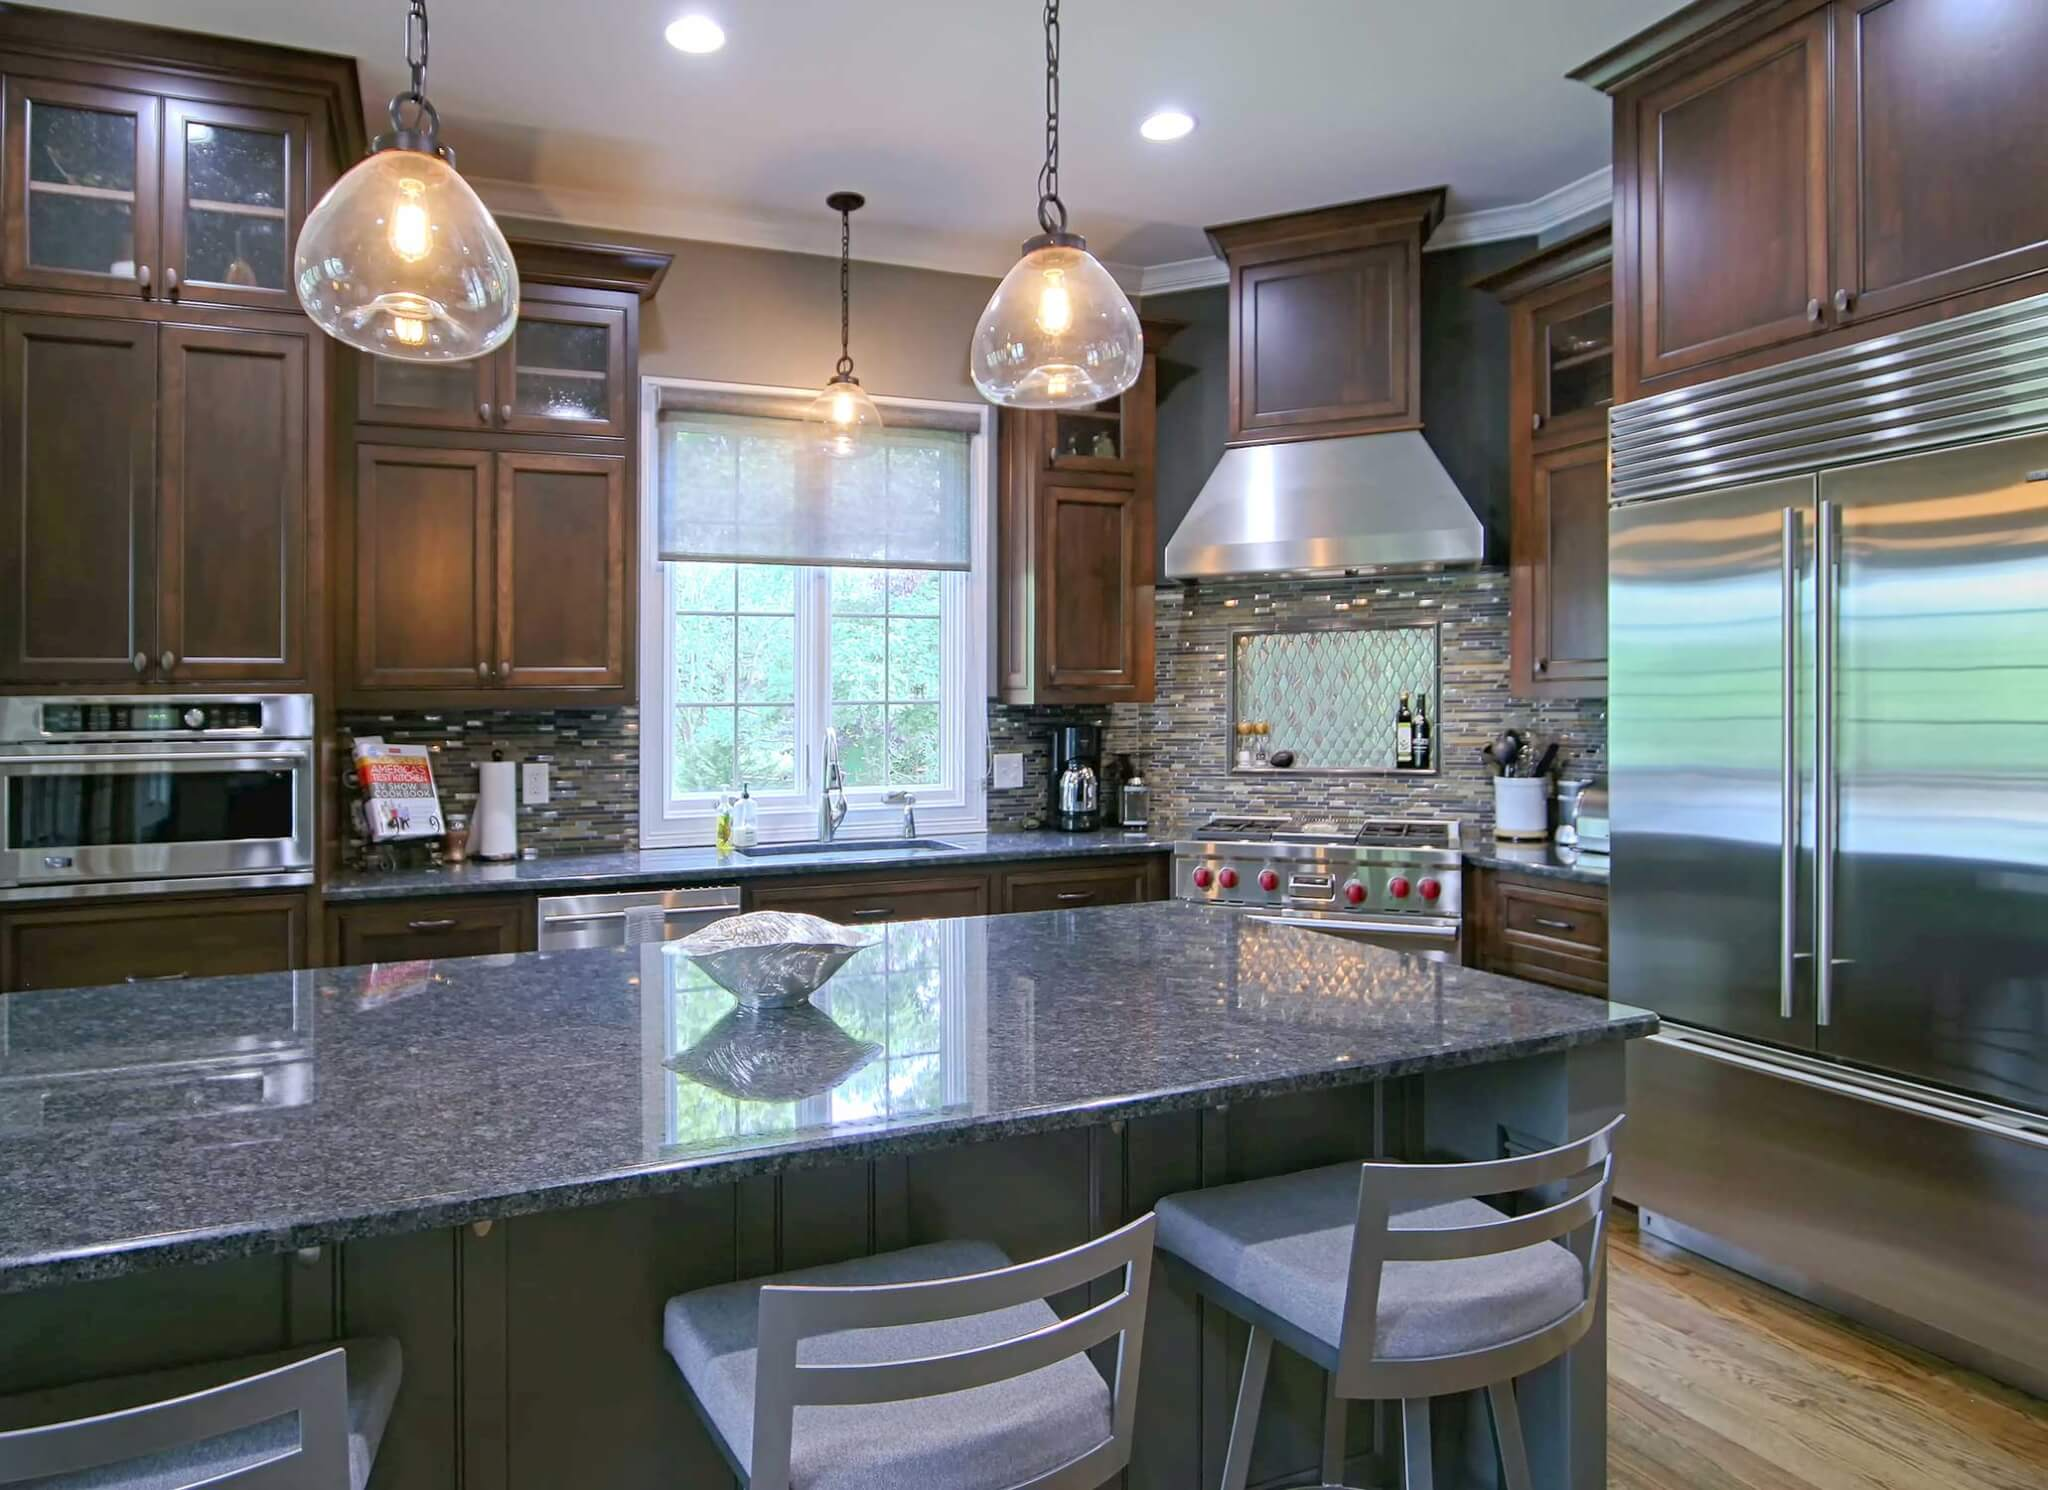 charlotte kitchen cabinets hansgrohe axor starck faucet custom made islands in shelby nc interior design photos classic stained transitional walker woodworking rh walkerwoodworking com